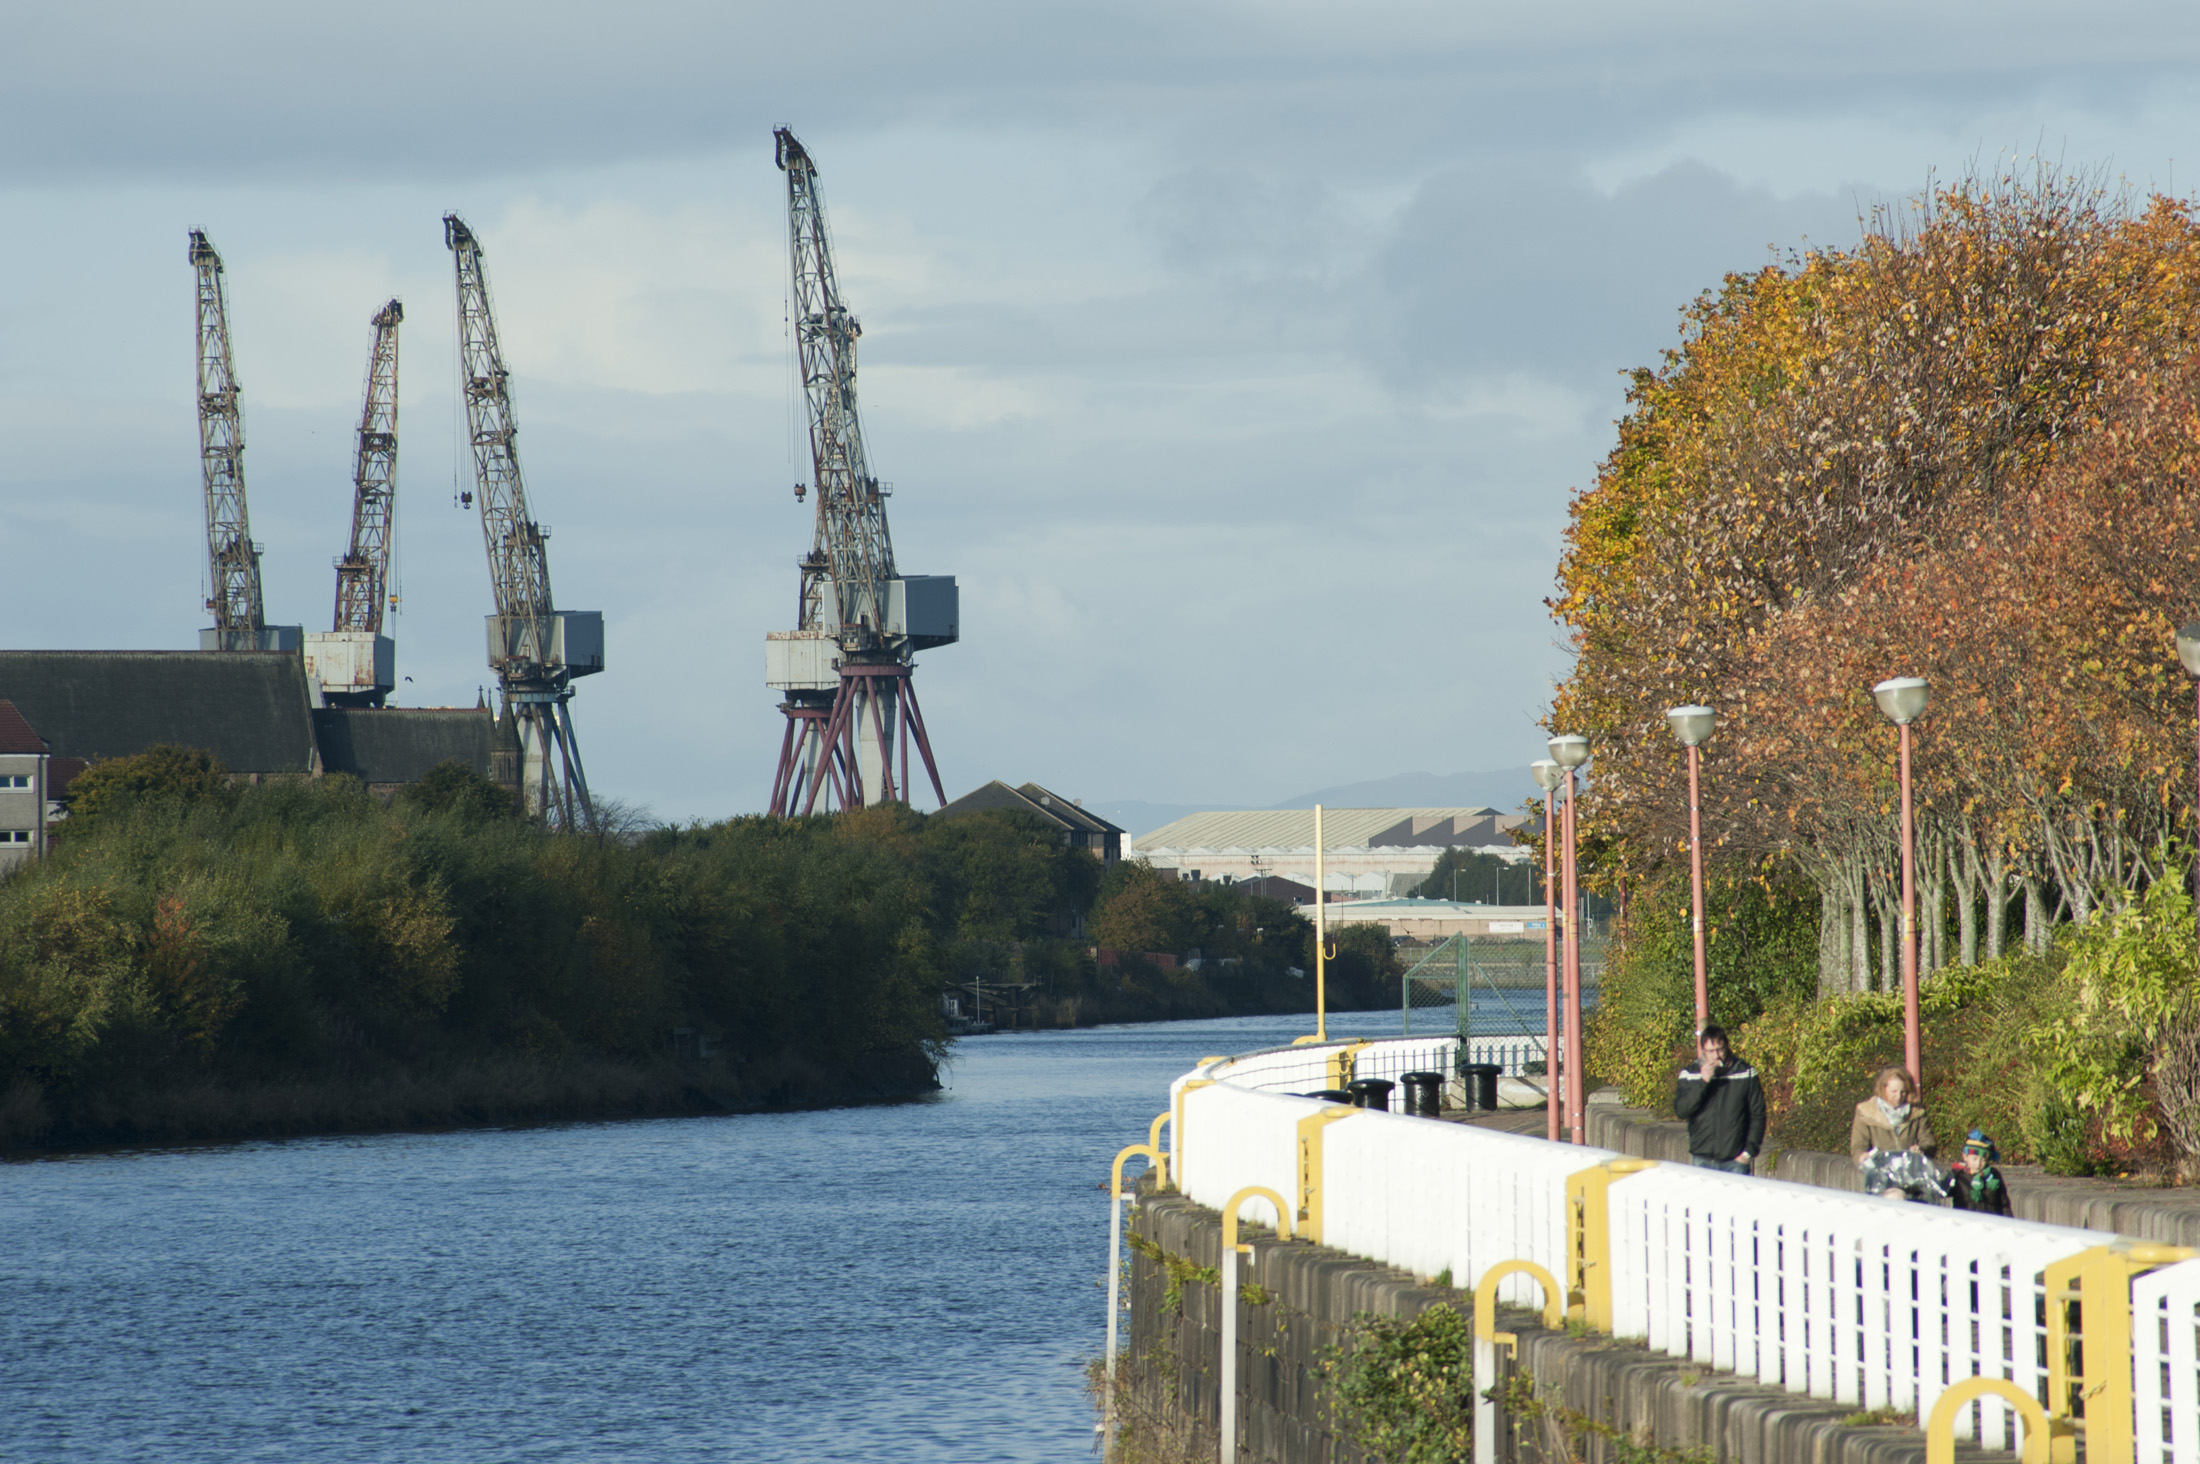 Clyde shipyards in Glasgow Scotland with a view of industrial cranes on the wharf in the shipbuilding terminal